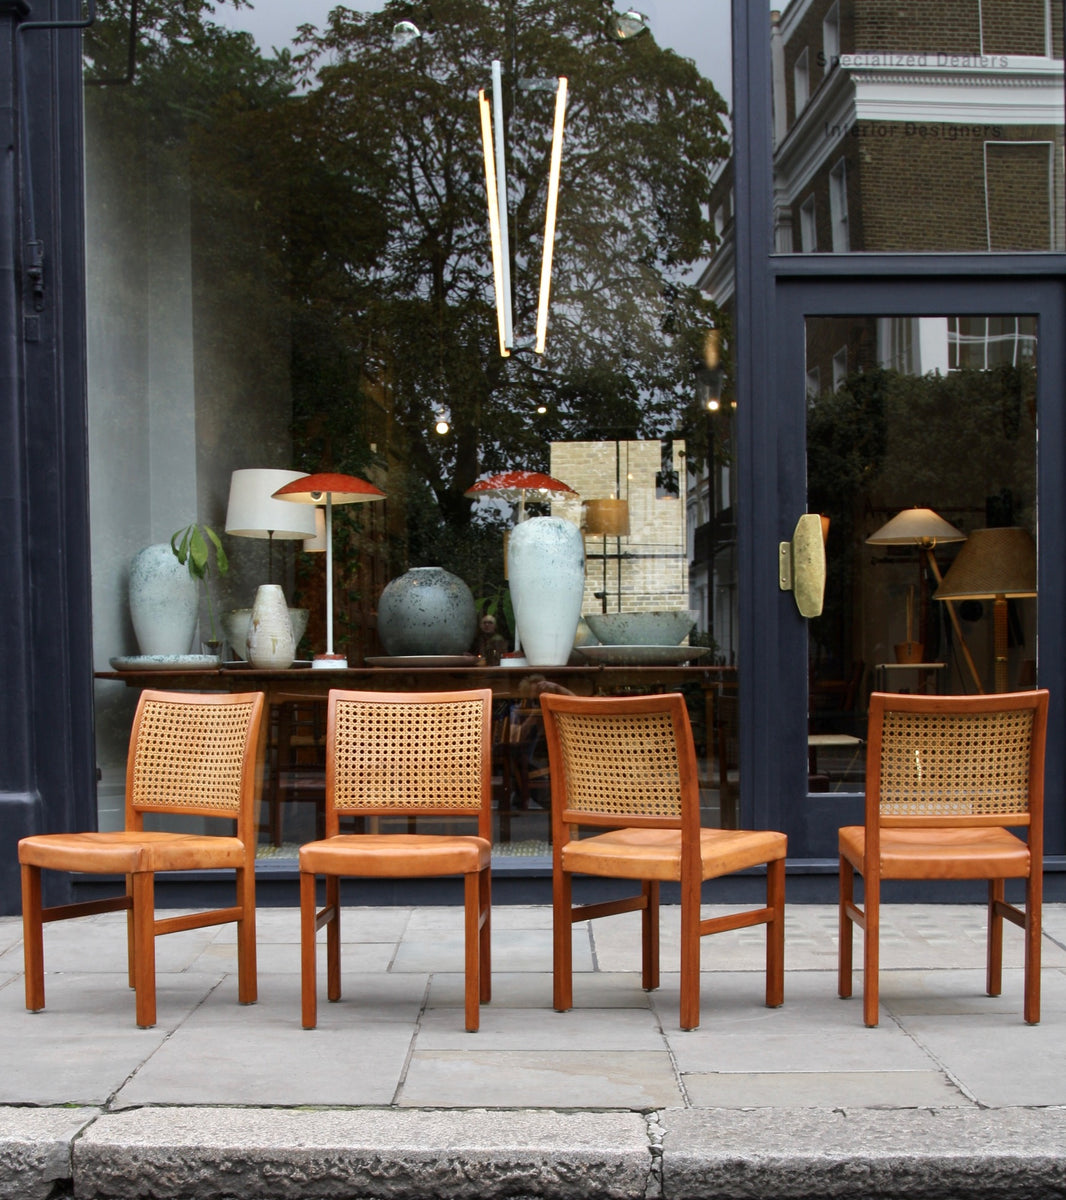 Four Teak, Leather & Cane Chairs Carl-Gustav Hiort af Ornäs  - Image 13